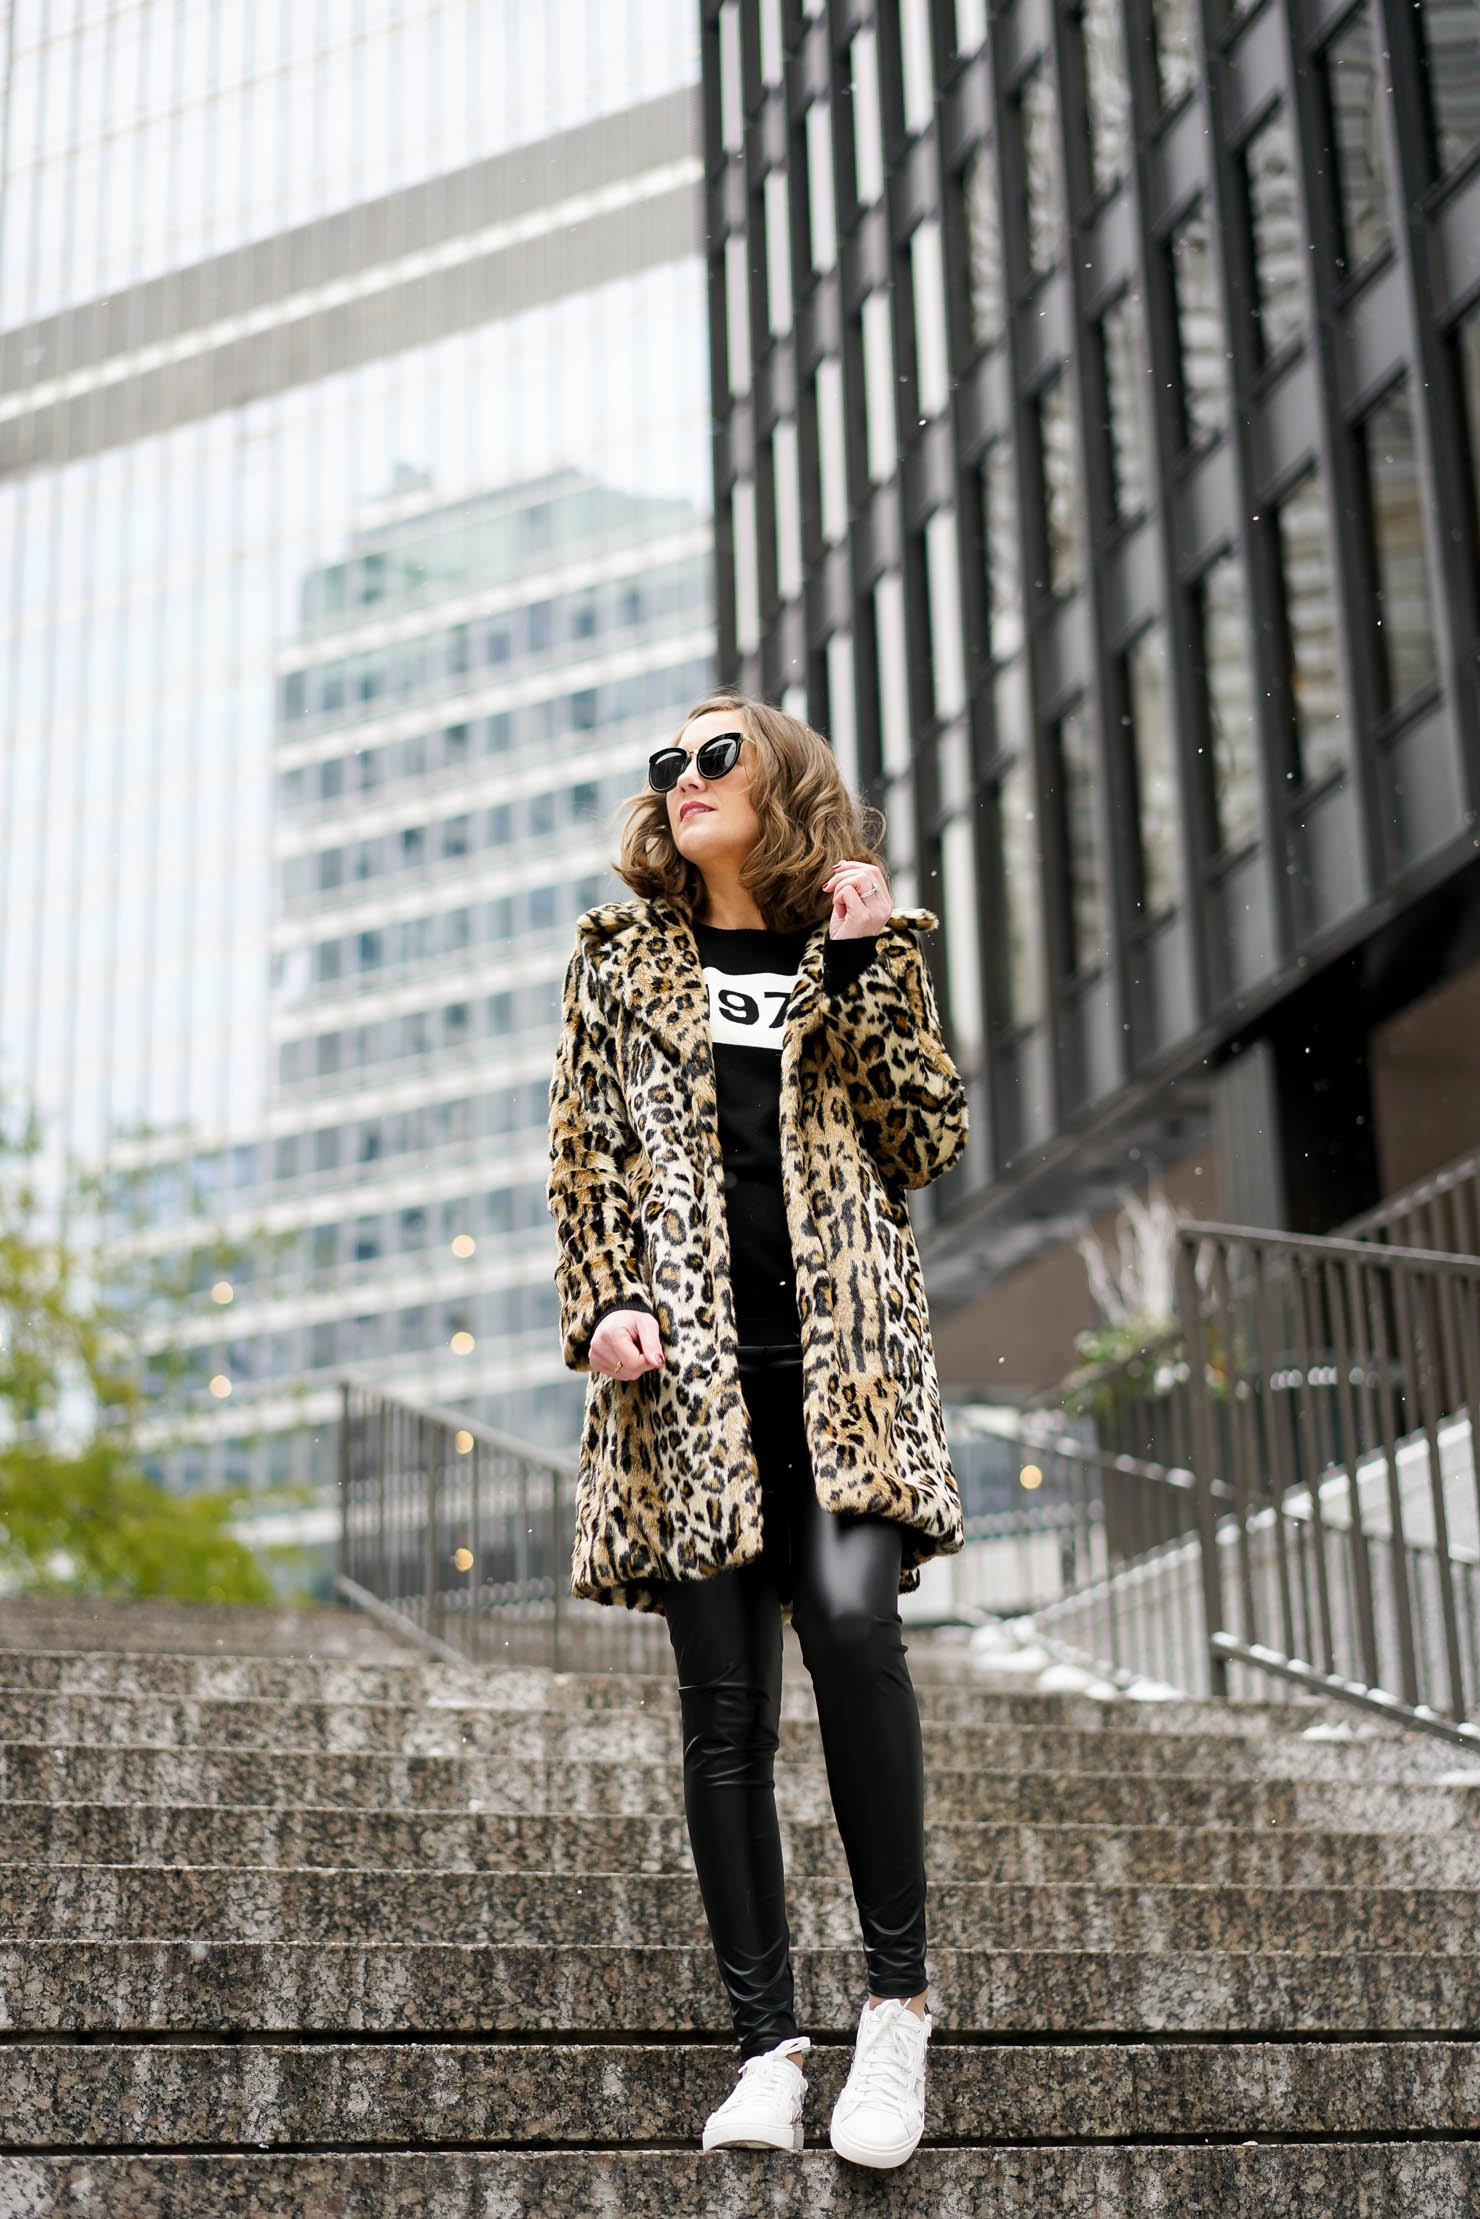 Modern Styling of the Leopard Print Coat, styling the faux fur leopard coat trend, leather, leggings save or splurge, chicago in winter